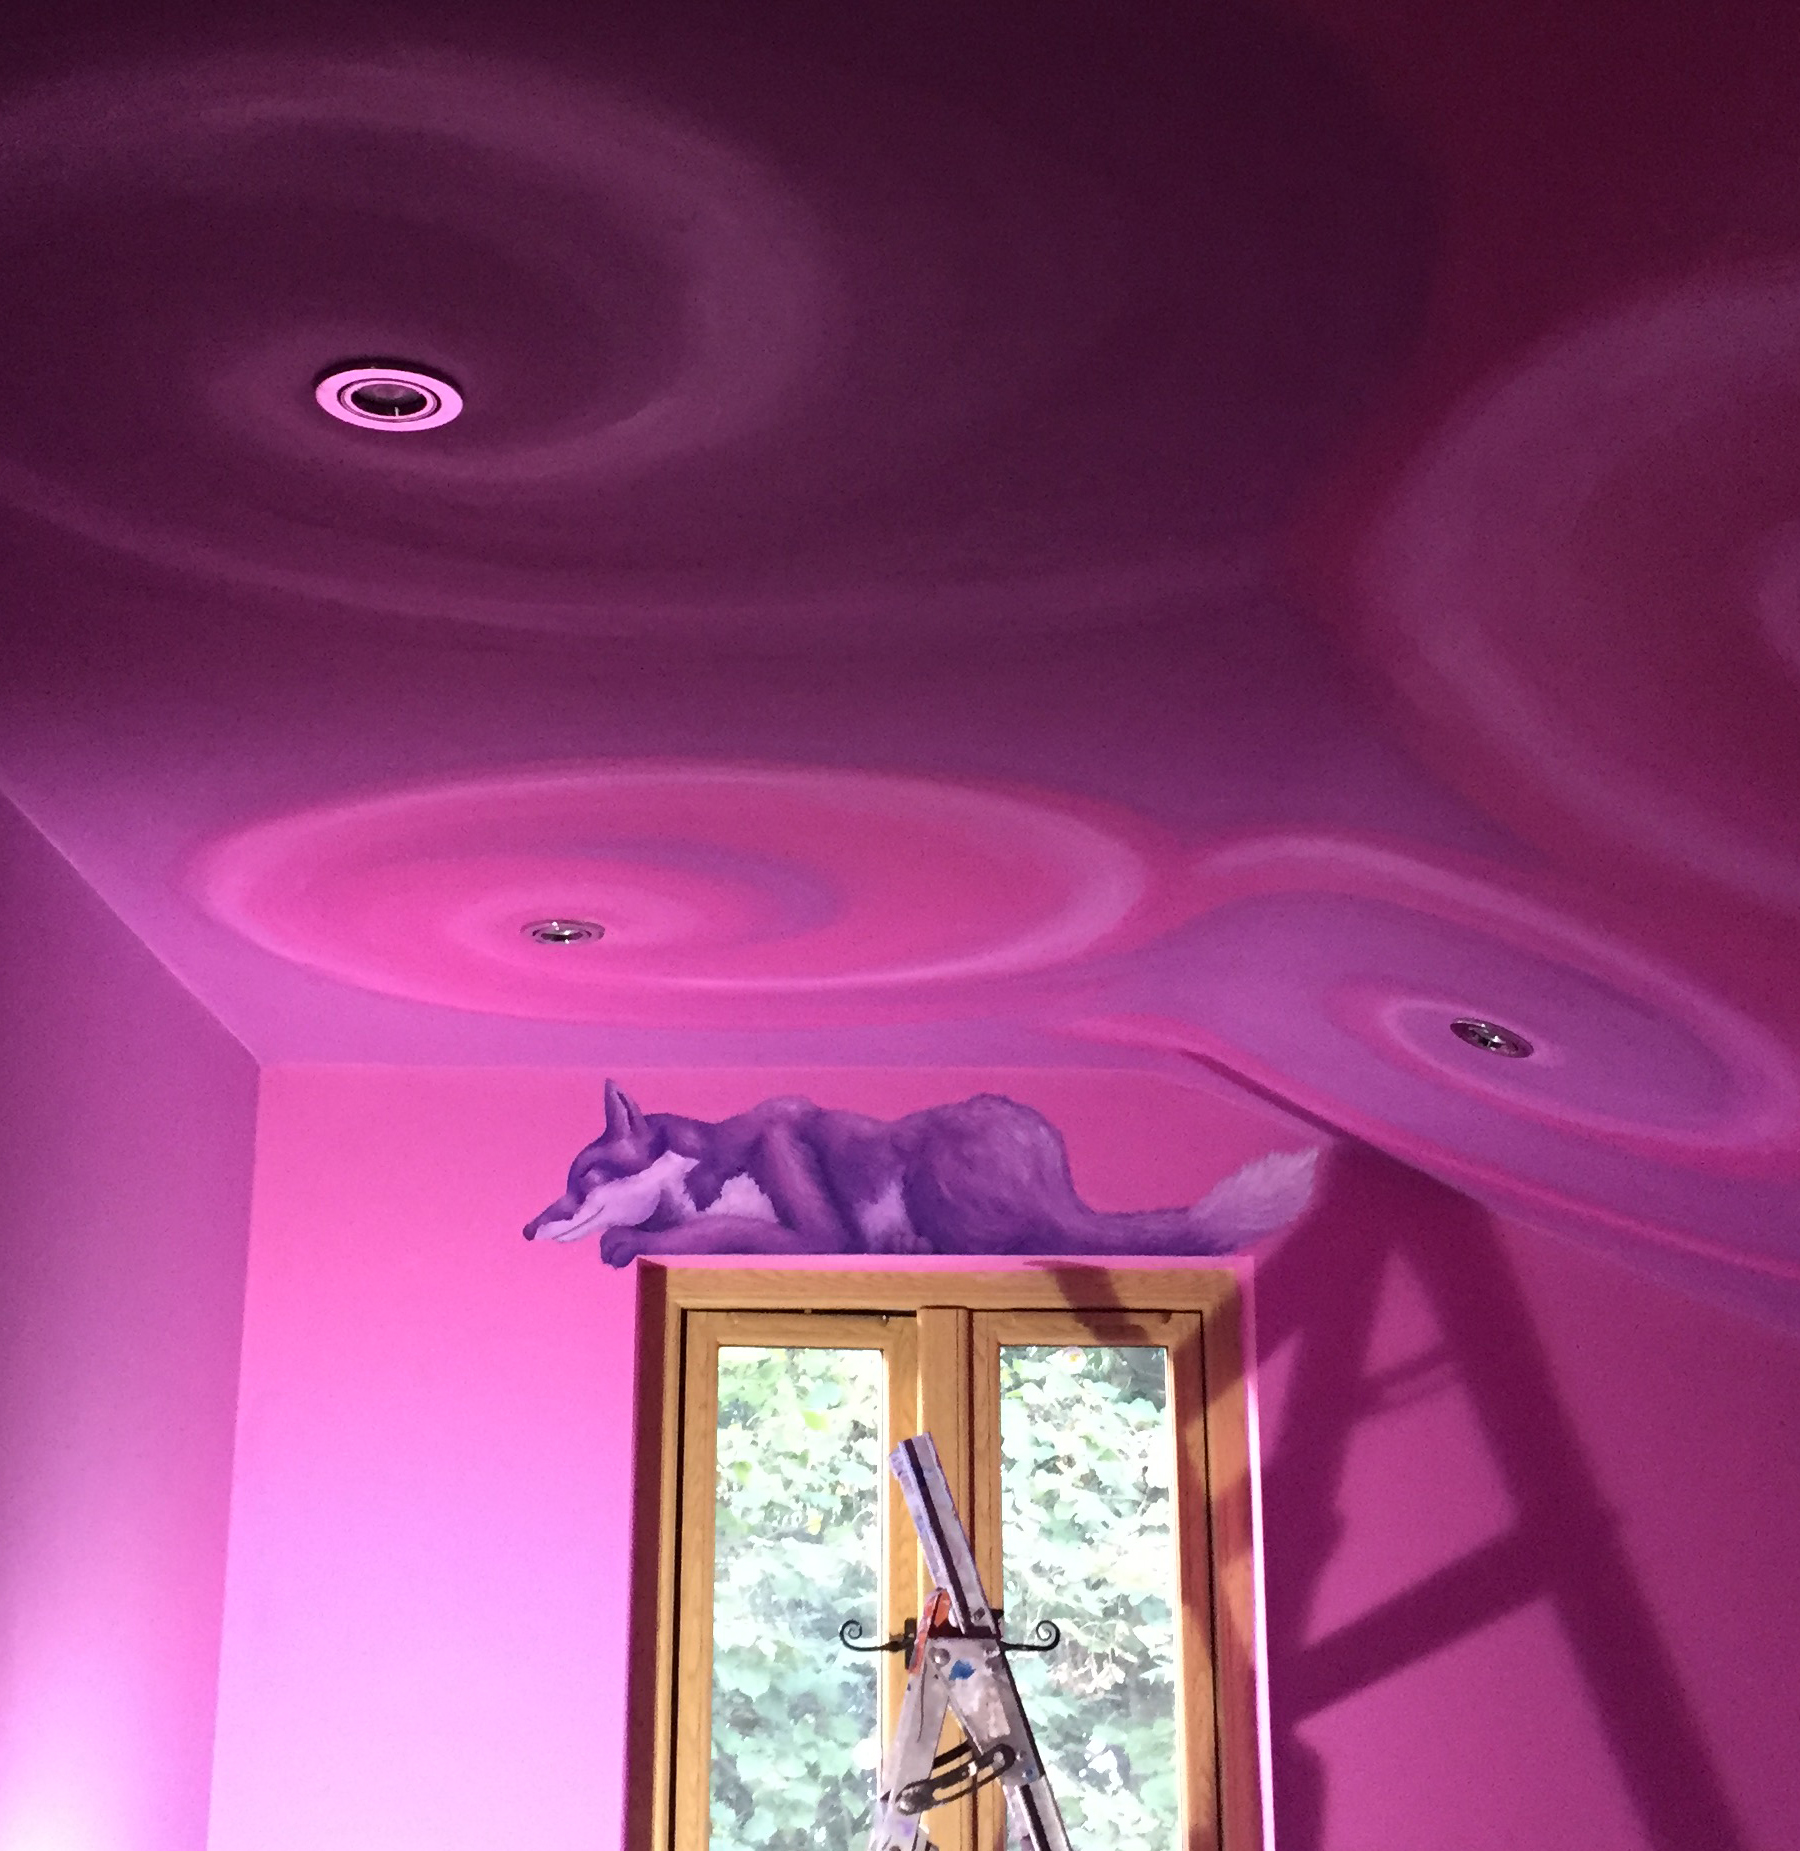 Swirly Ceiling and Fox